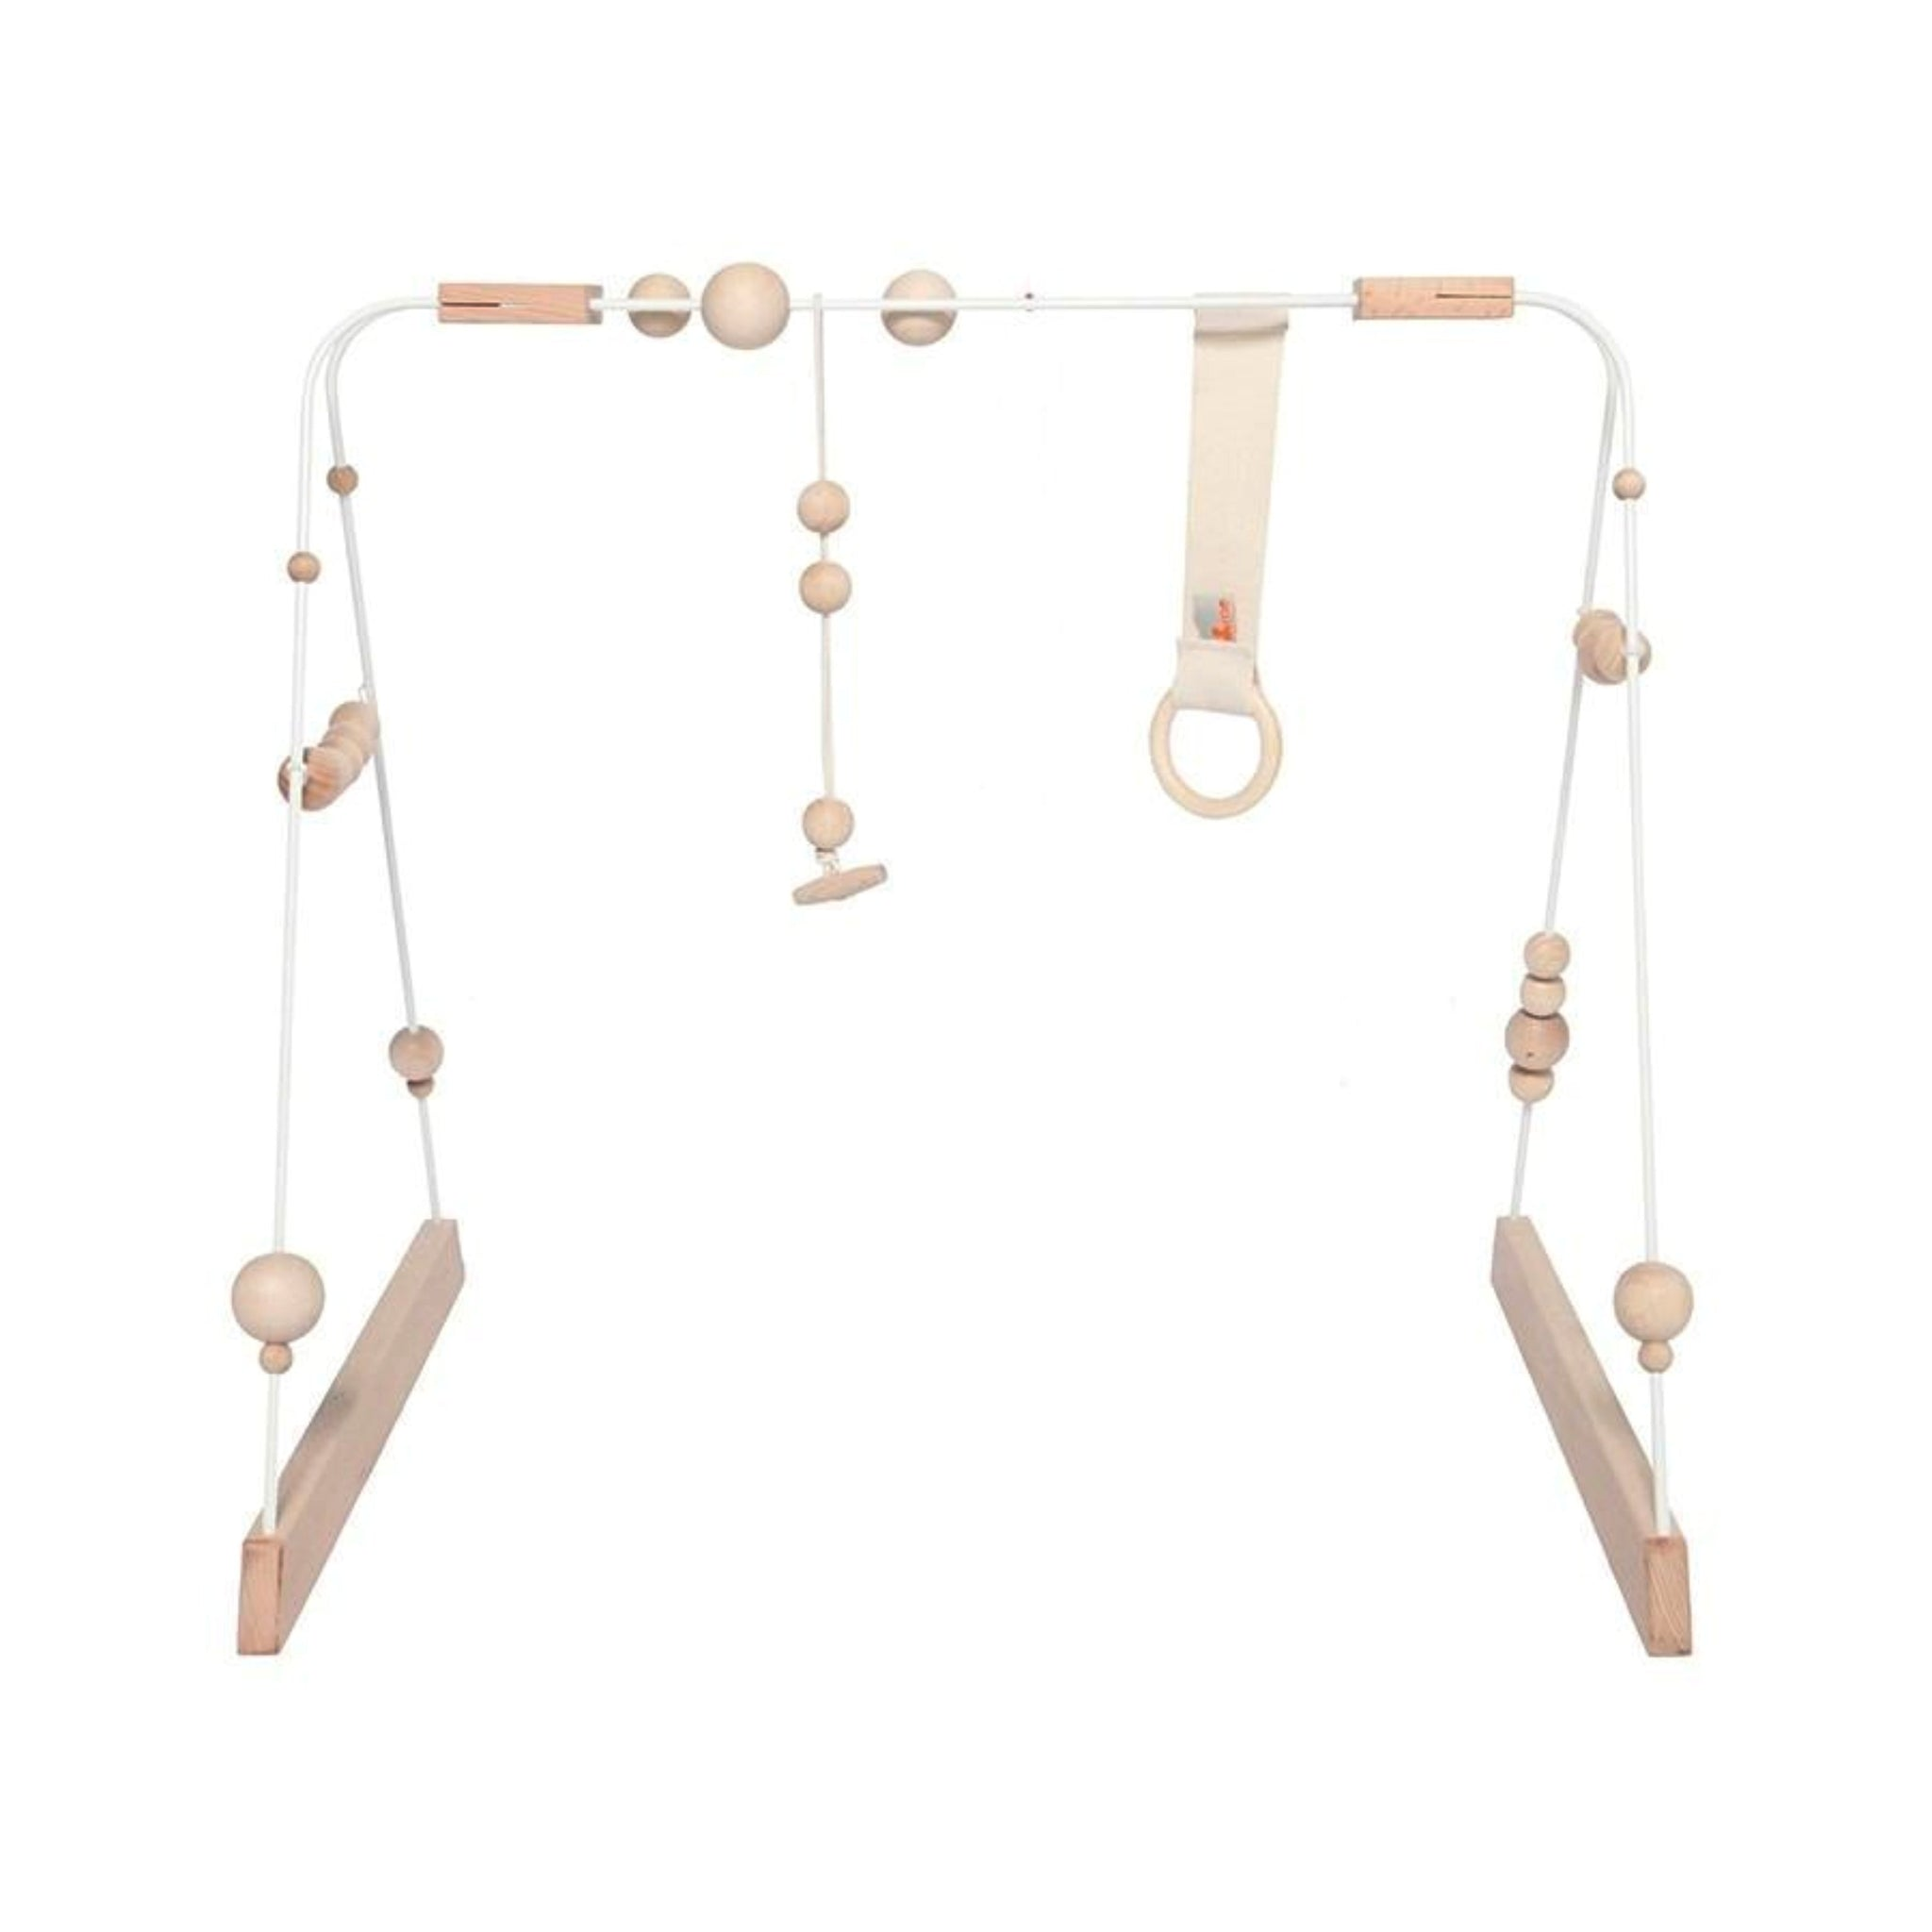 Scandi style Wooden Baby Gym perfect for the modern minimalist nursery decor.